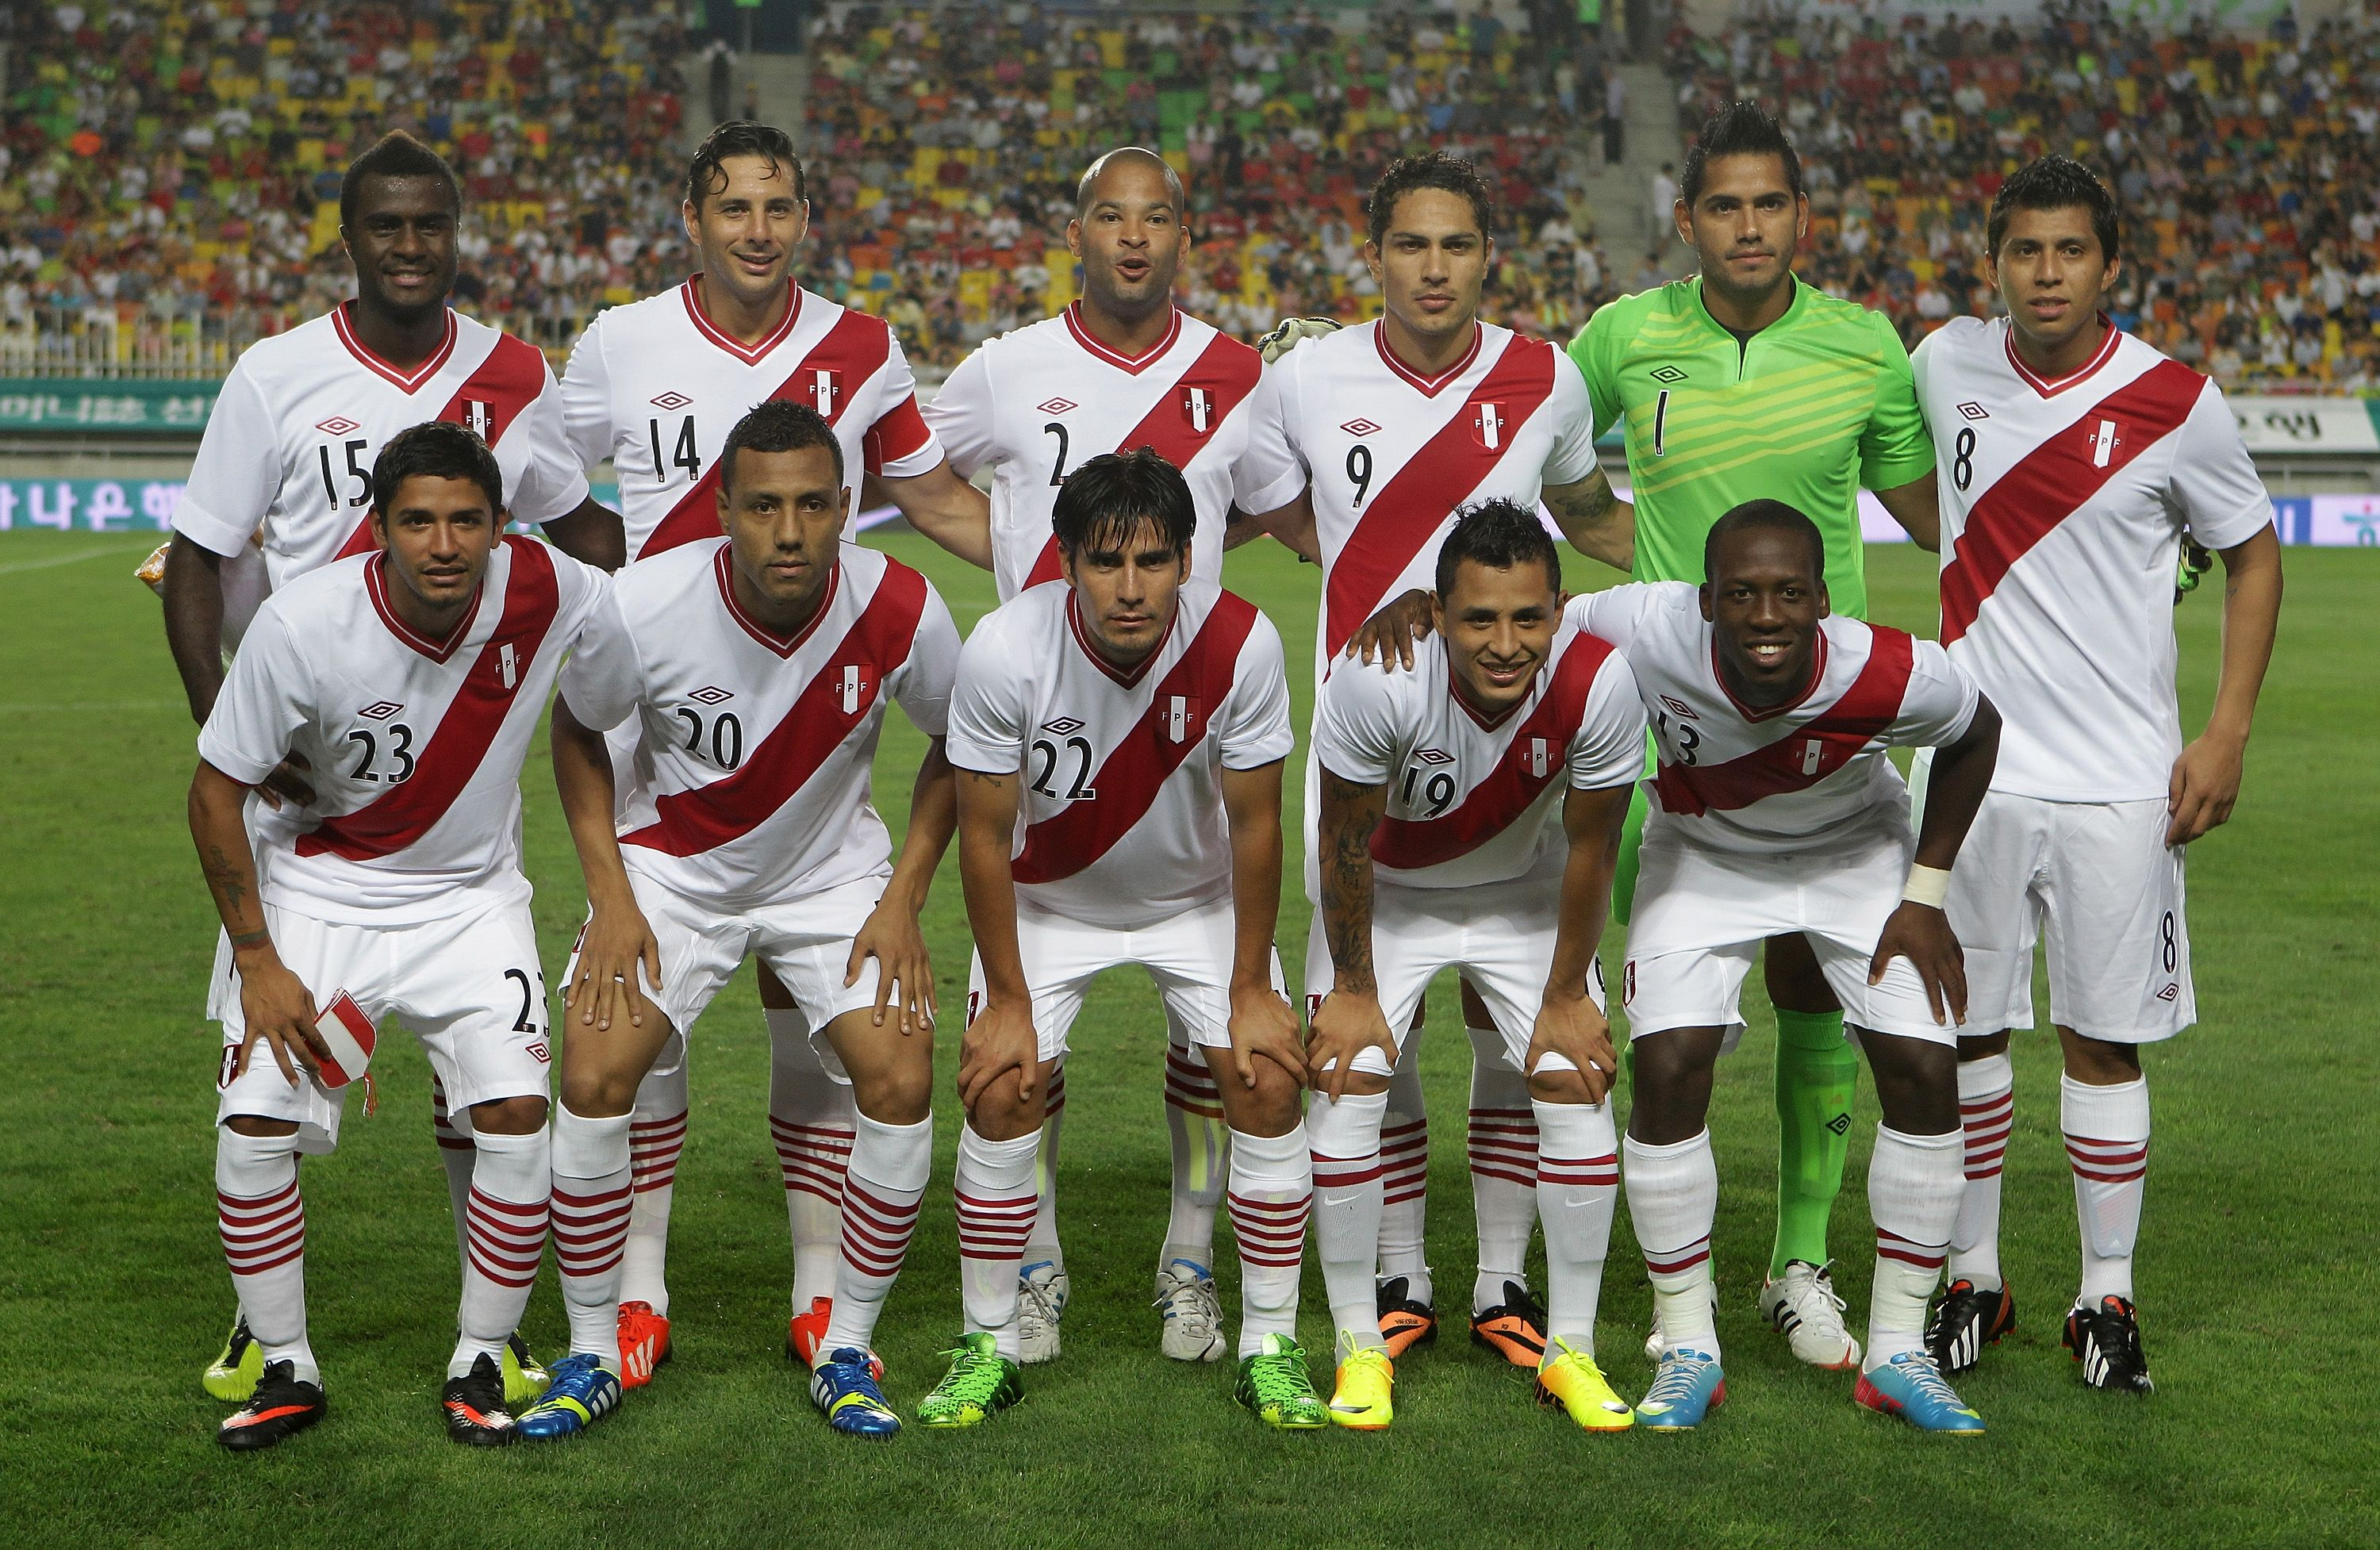 Daily Life: This image is of the Peru Football Team of 2016. There